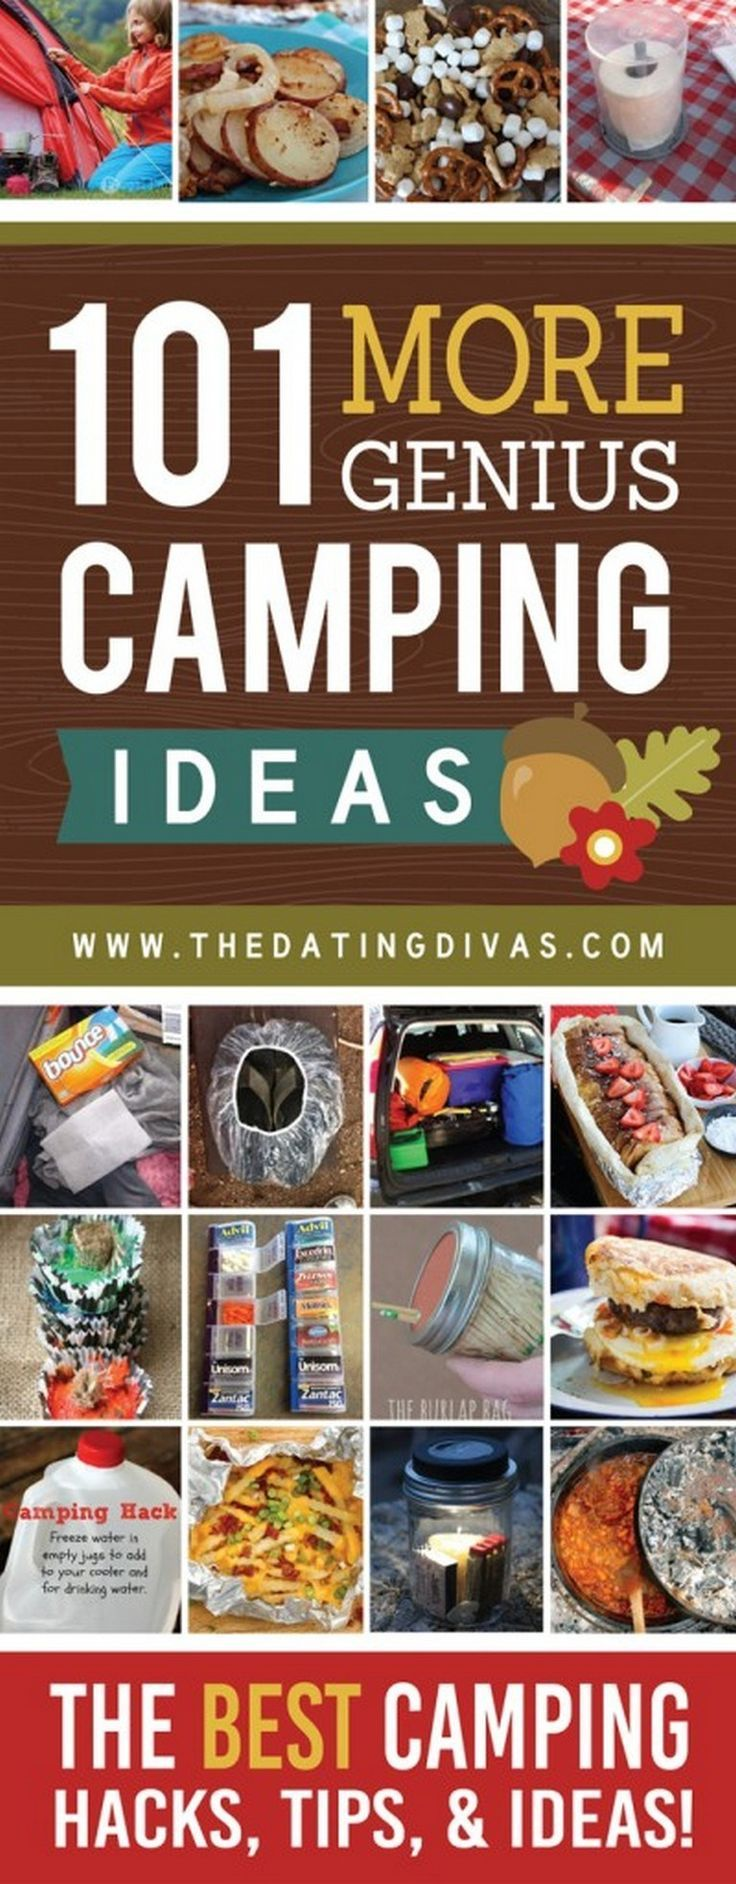 267 best camping michael images on pinterest camping stuff